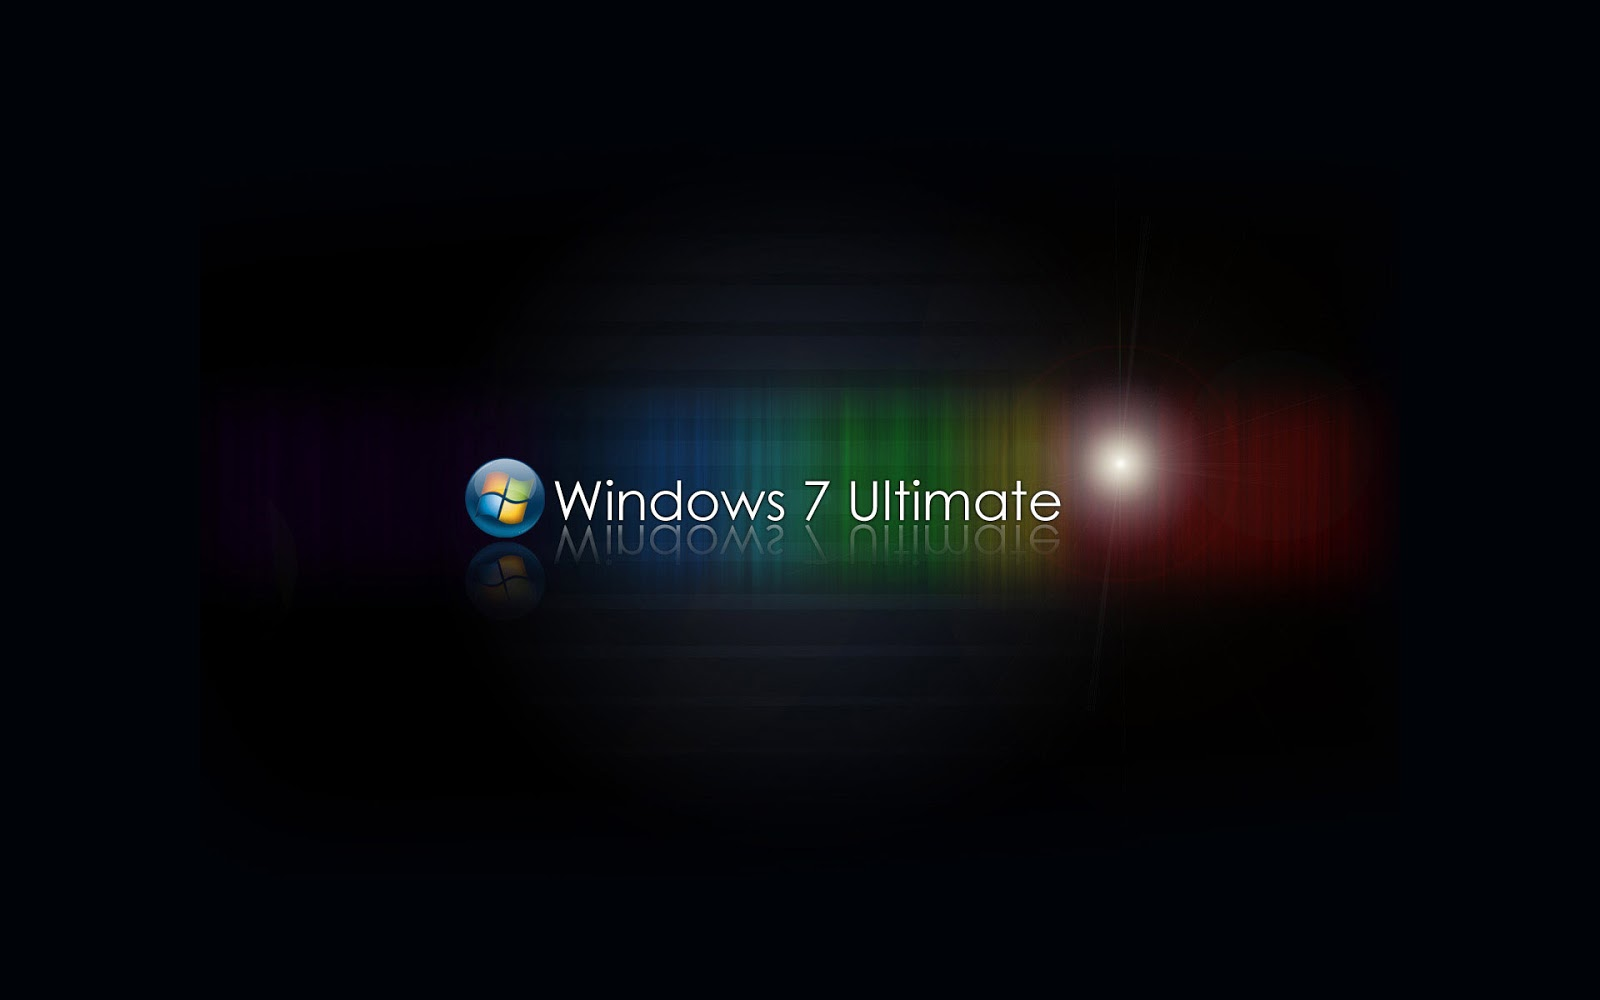 windows 7 wallpapers hd wallpapers windows 7 new widescreen